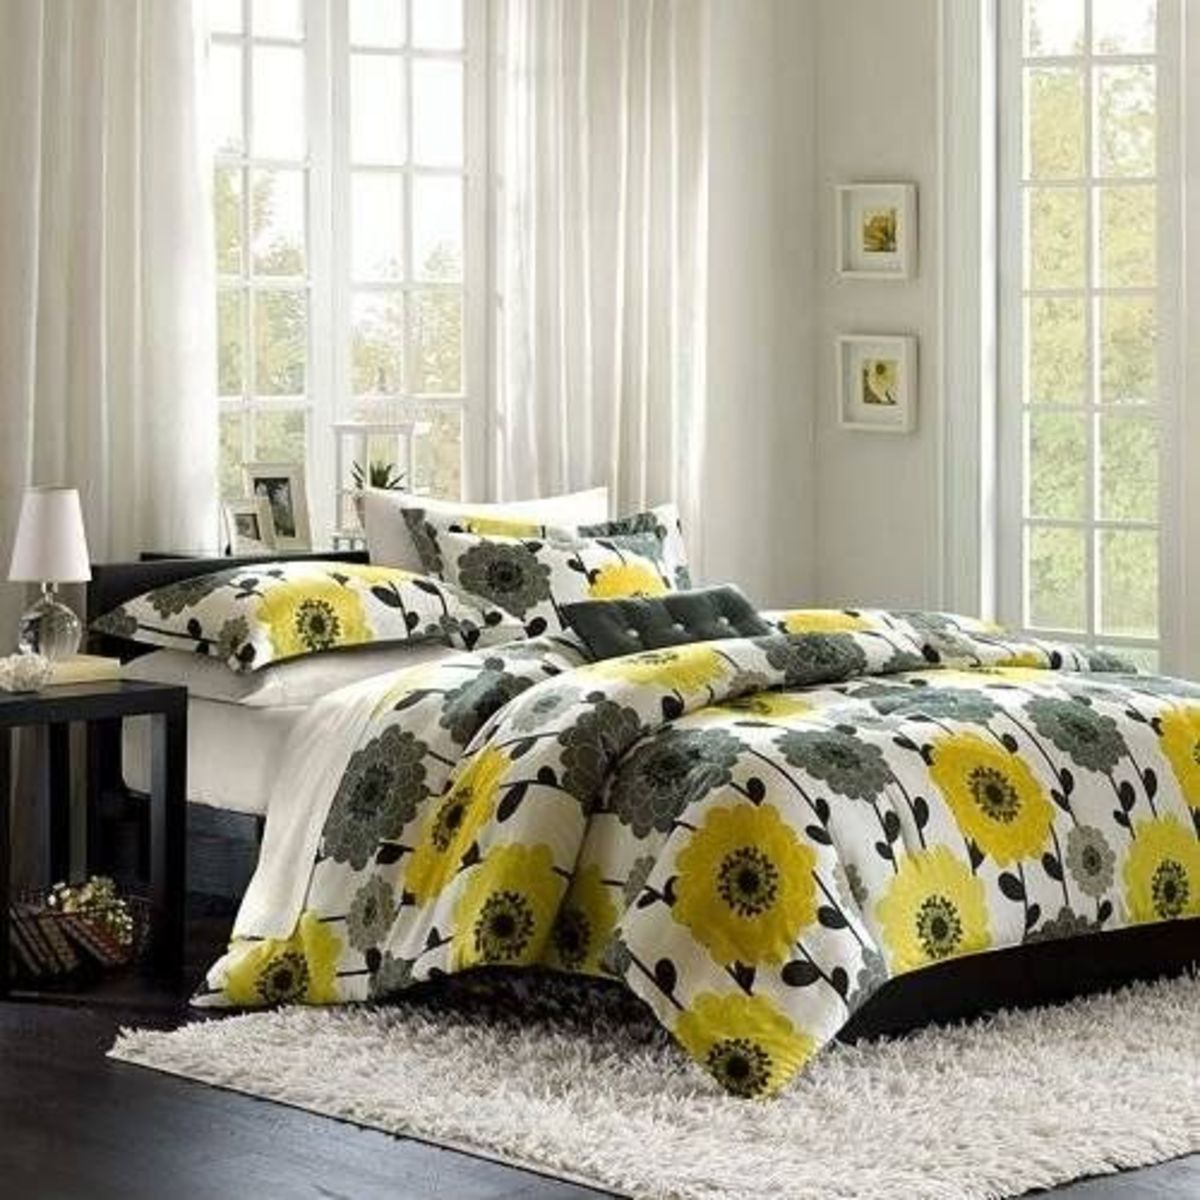 Mizone Anthea 4 Piece Comforter Set